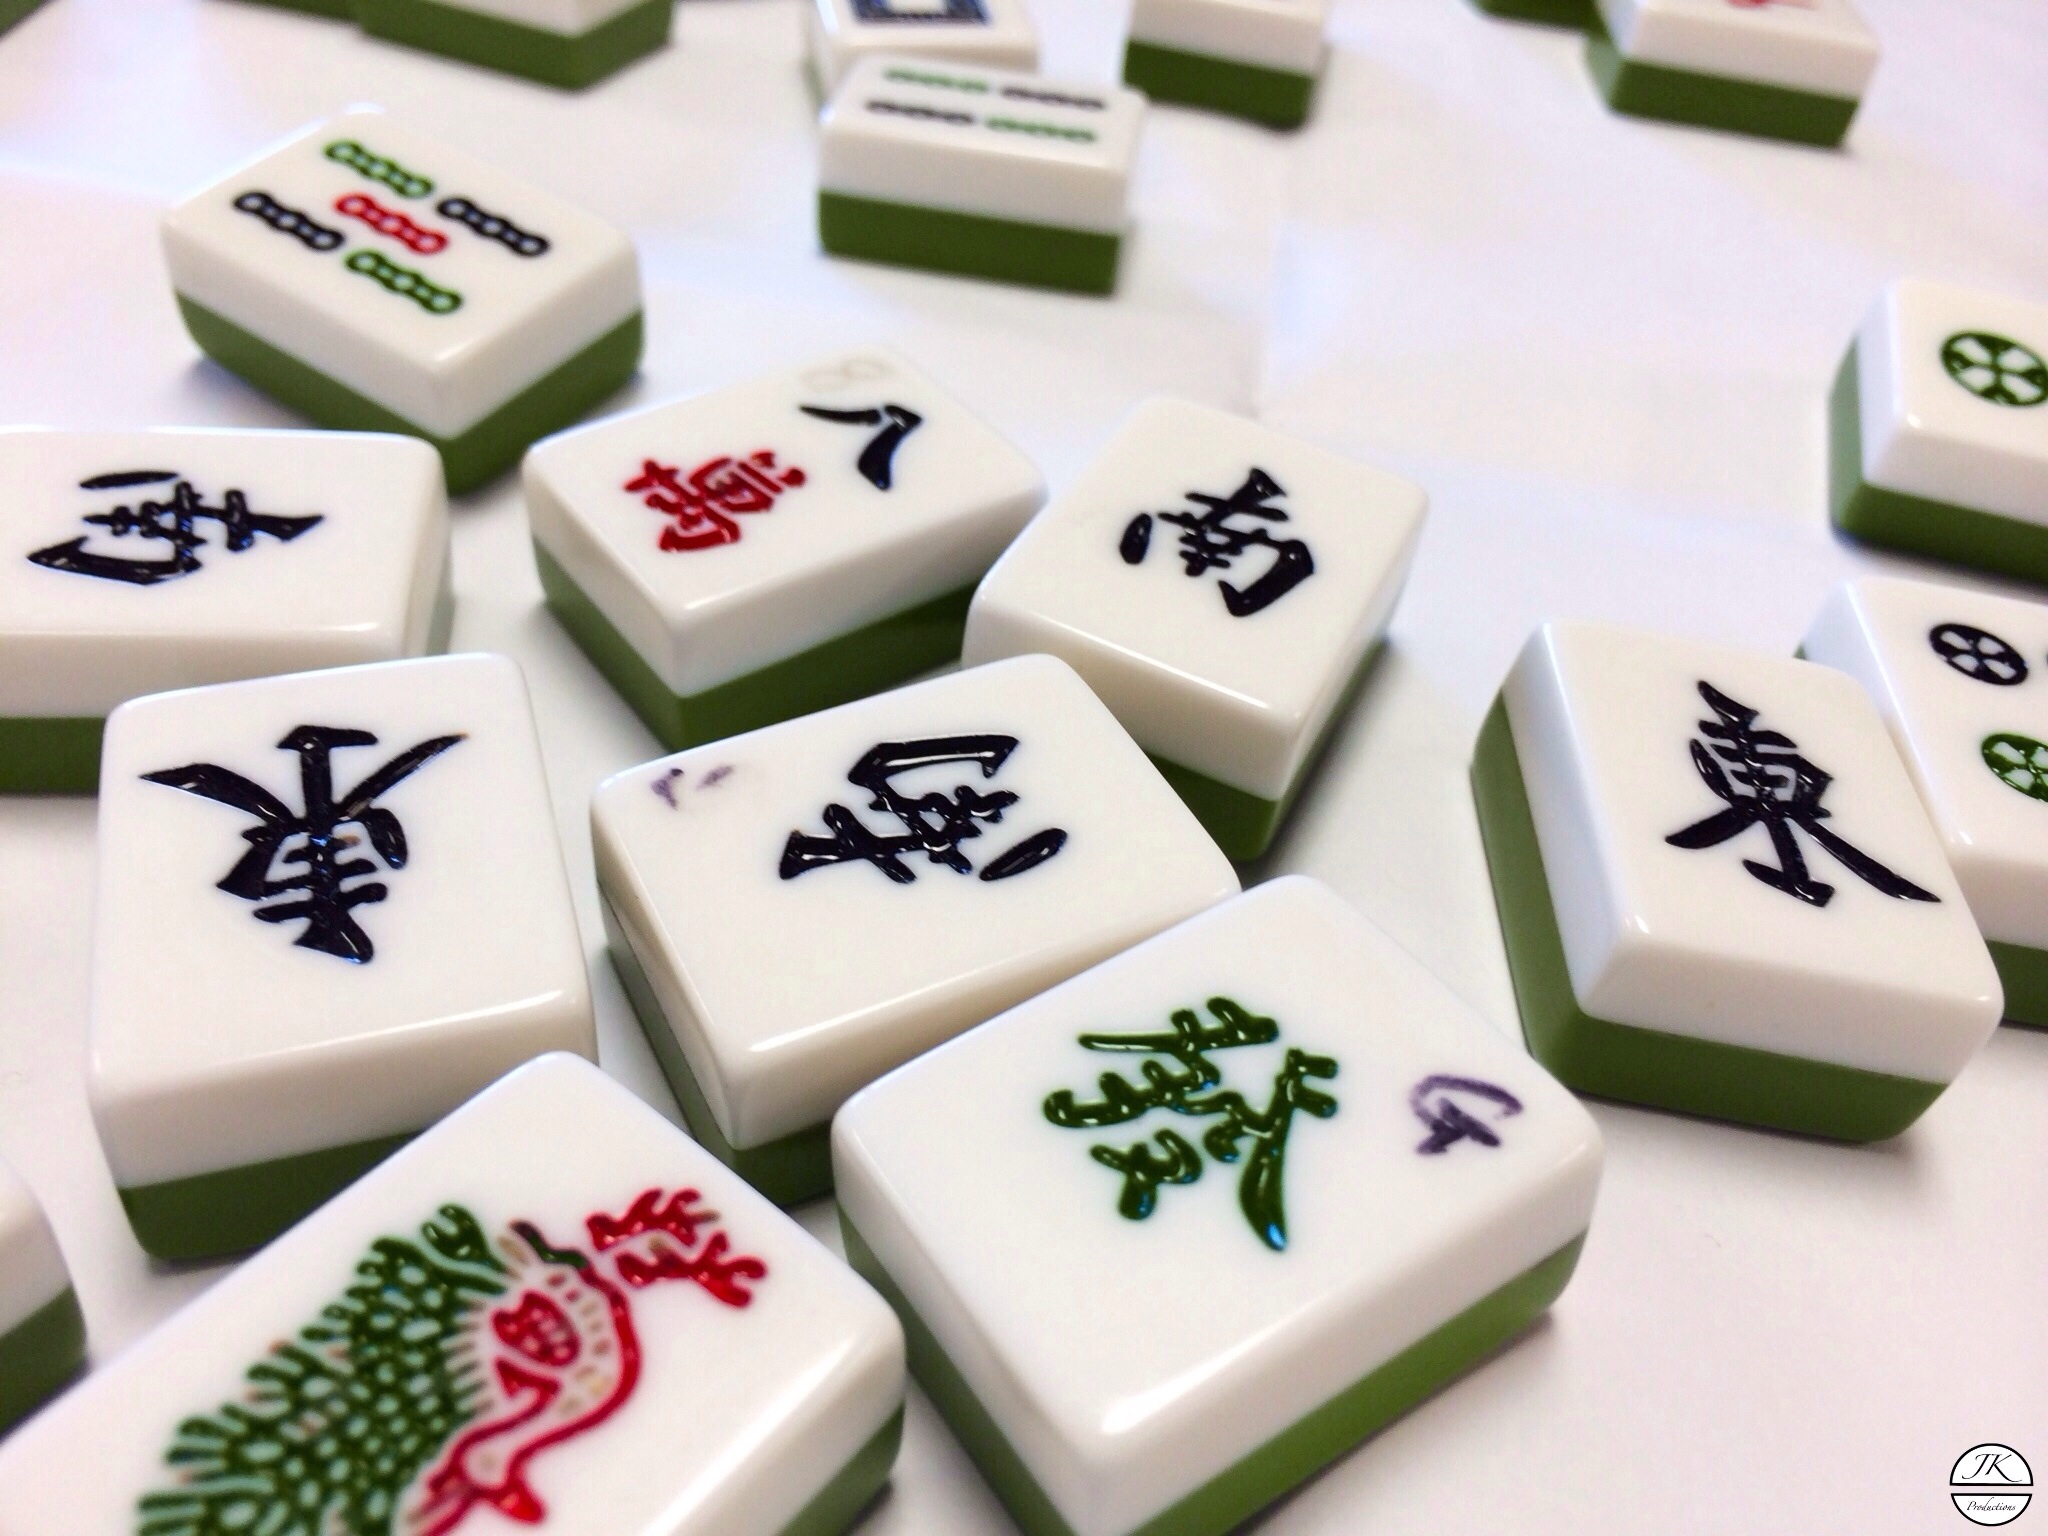 For the last class before winter break, my Chinese teacher brought in her mahjong set to teach us how to play. The only catch was that we had to speak only ...